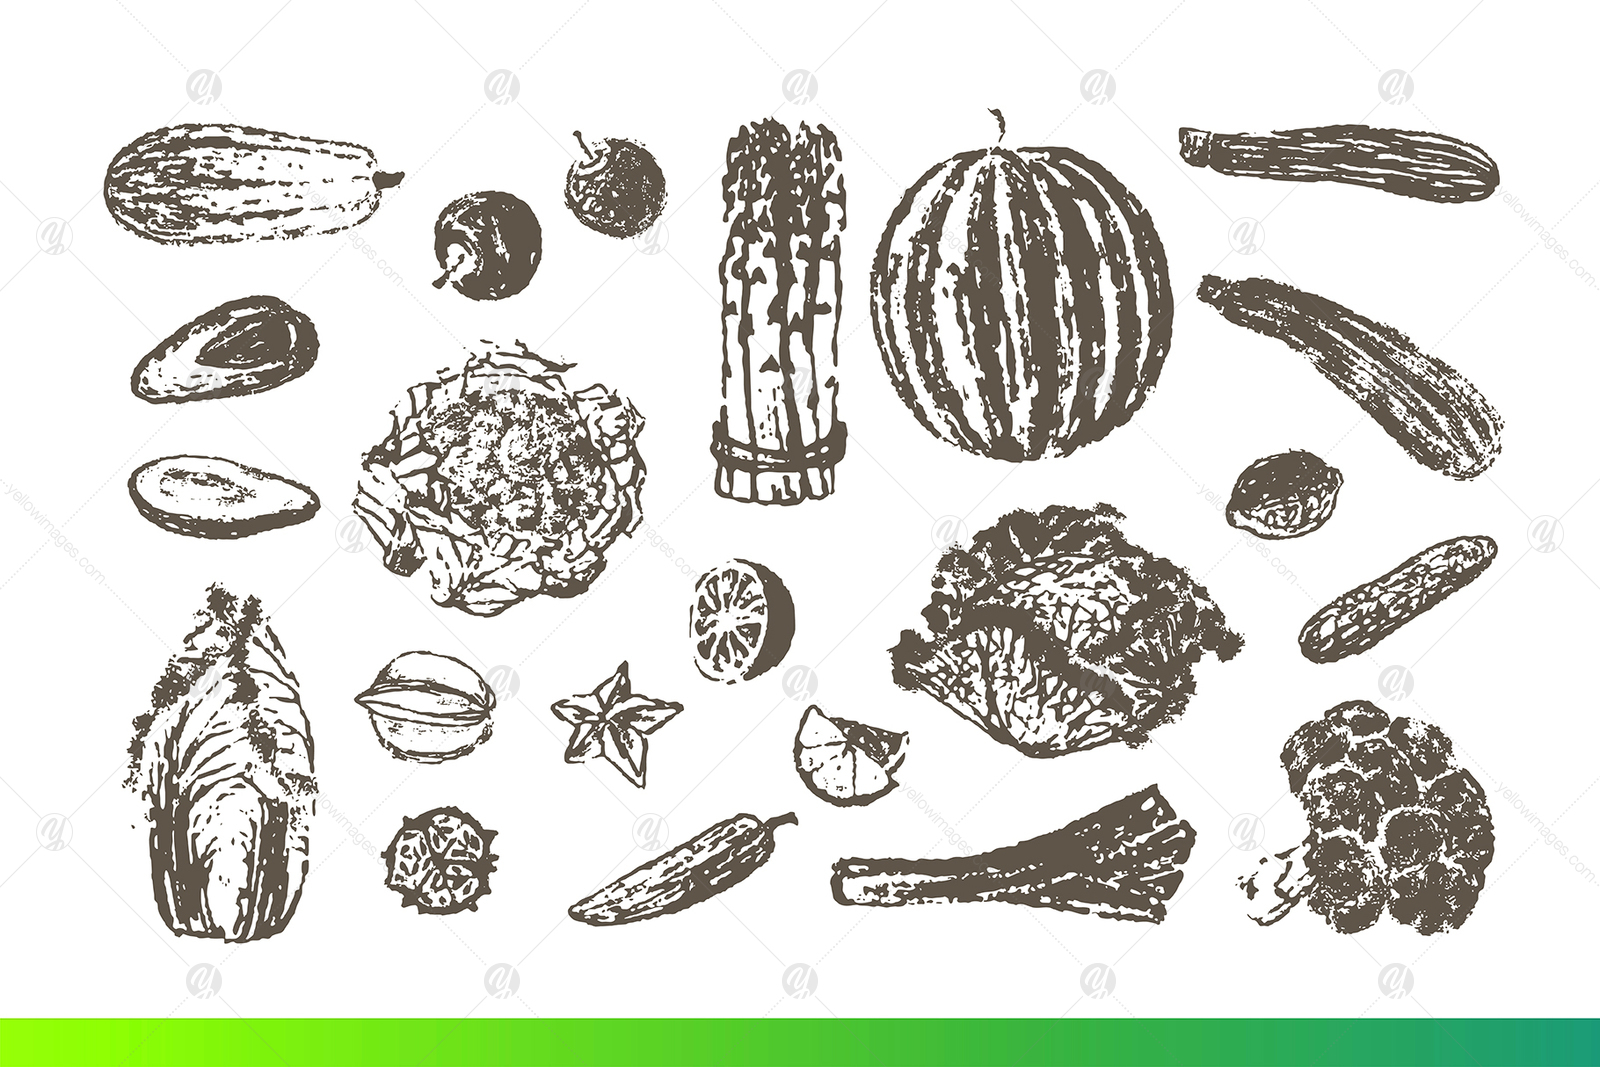 Fruits and Veggies Ink Drawings